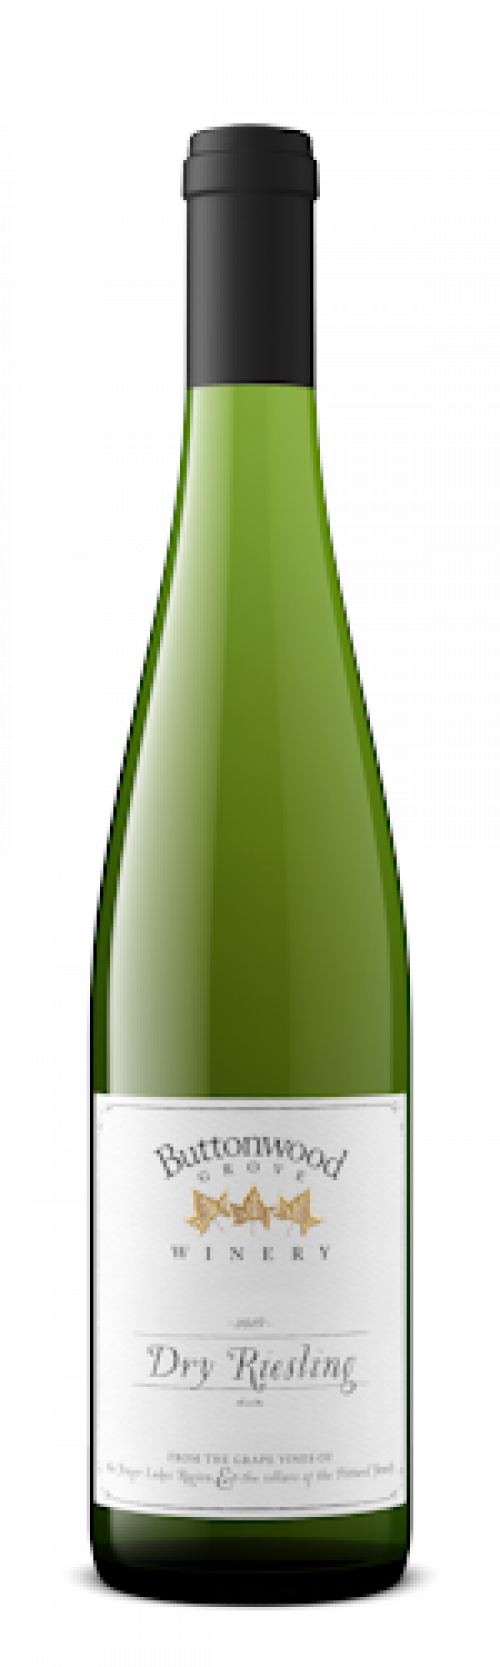 Buttonwood Grove Dry Riesling 750ml